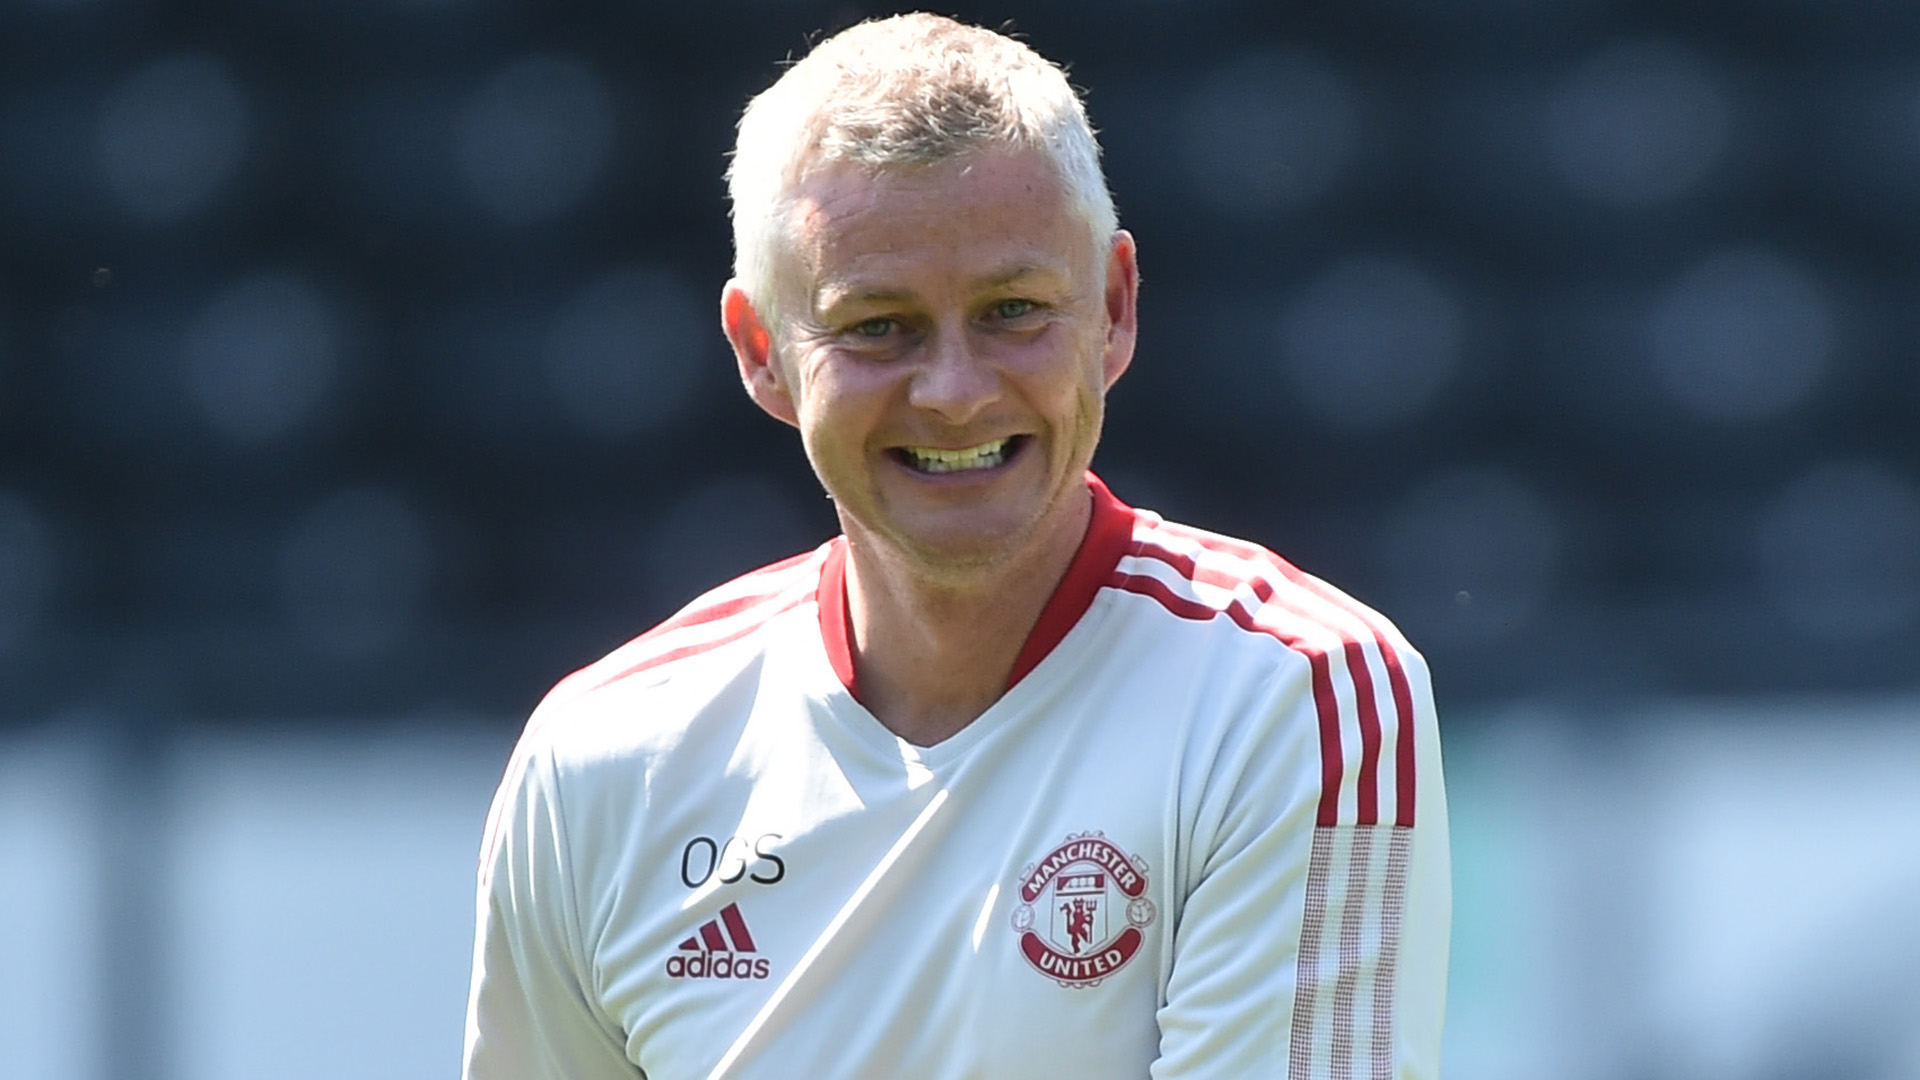 'I lost my job yesterday!' - Solskjaer not getting carried away with Man Utd title talk